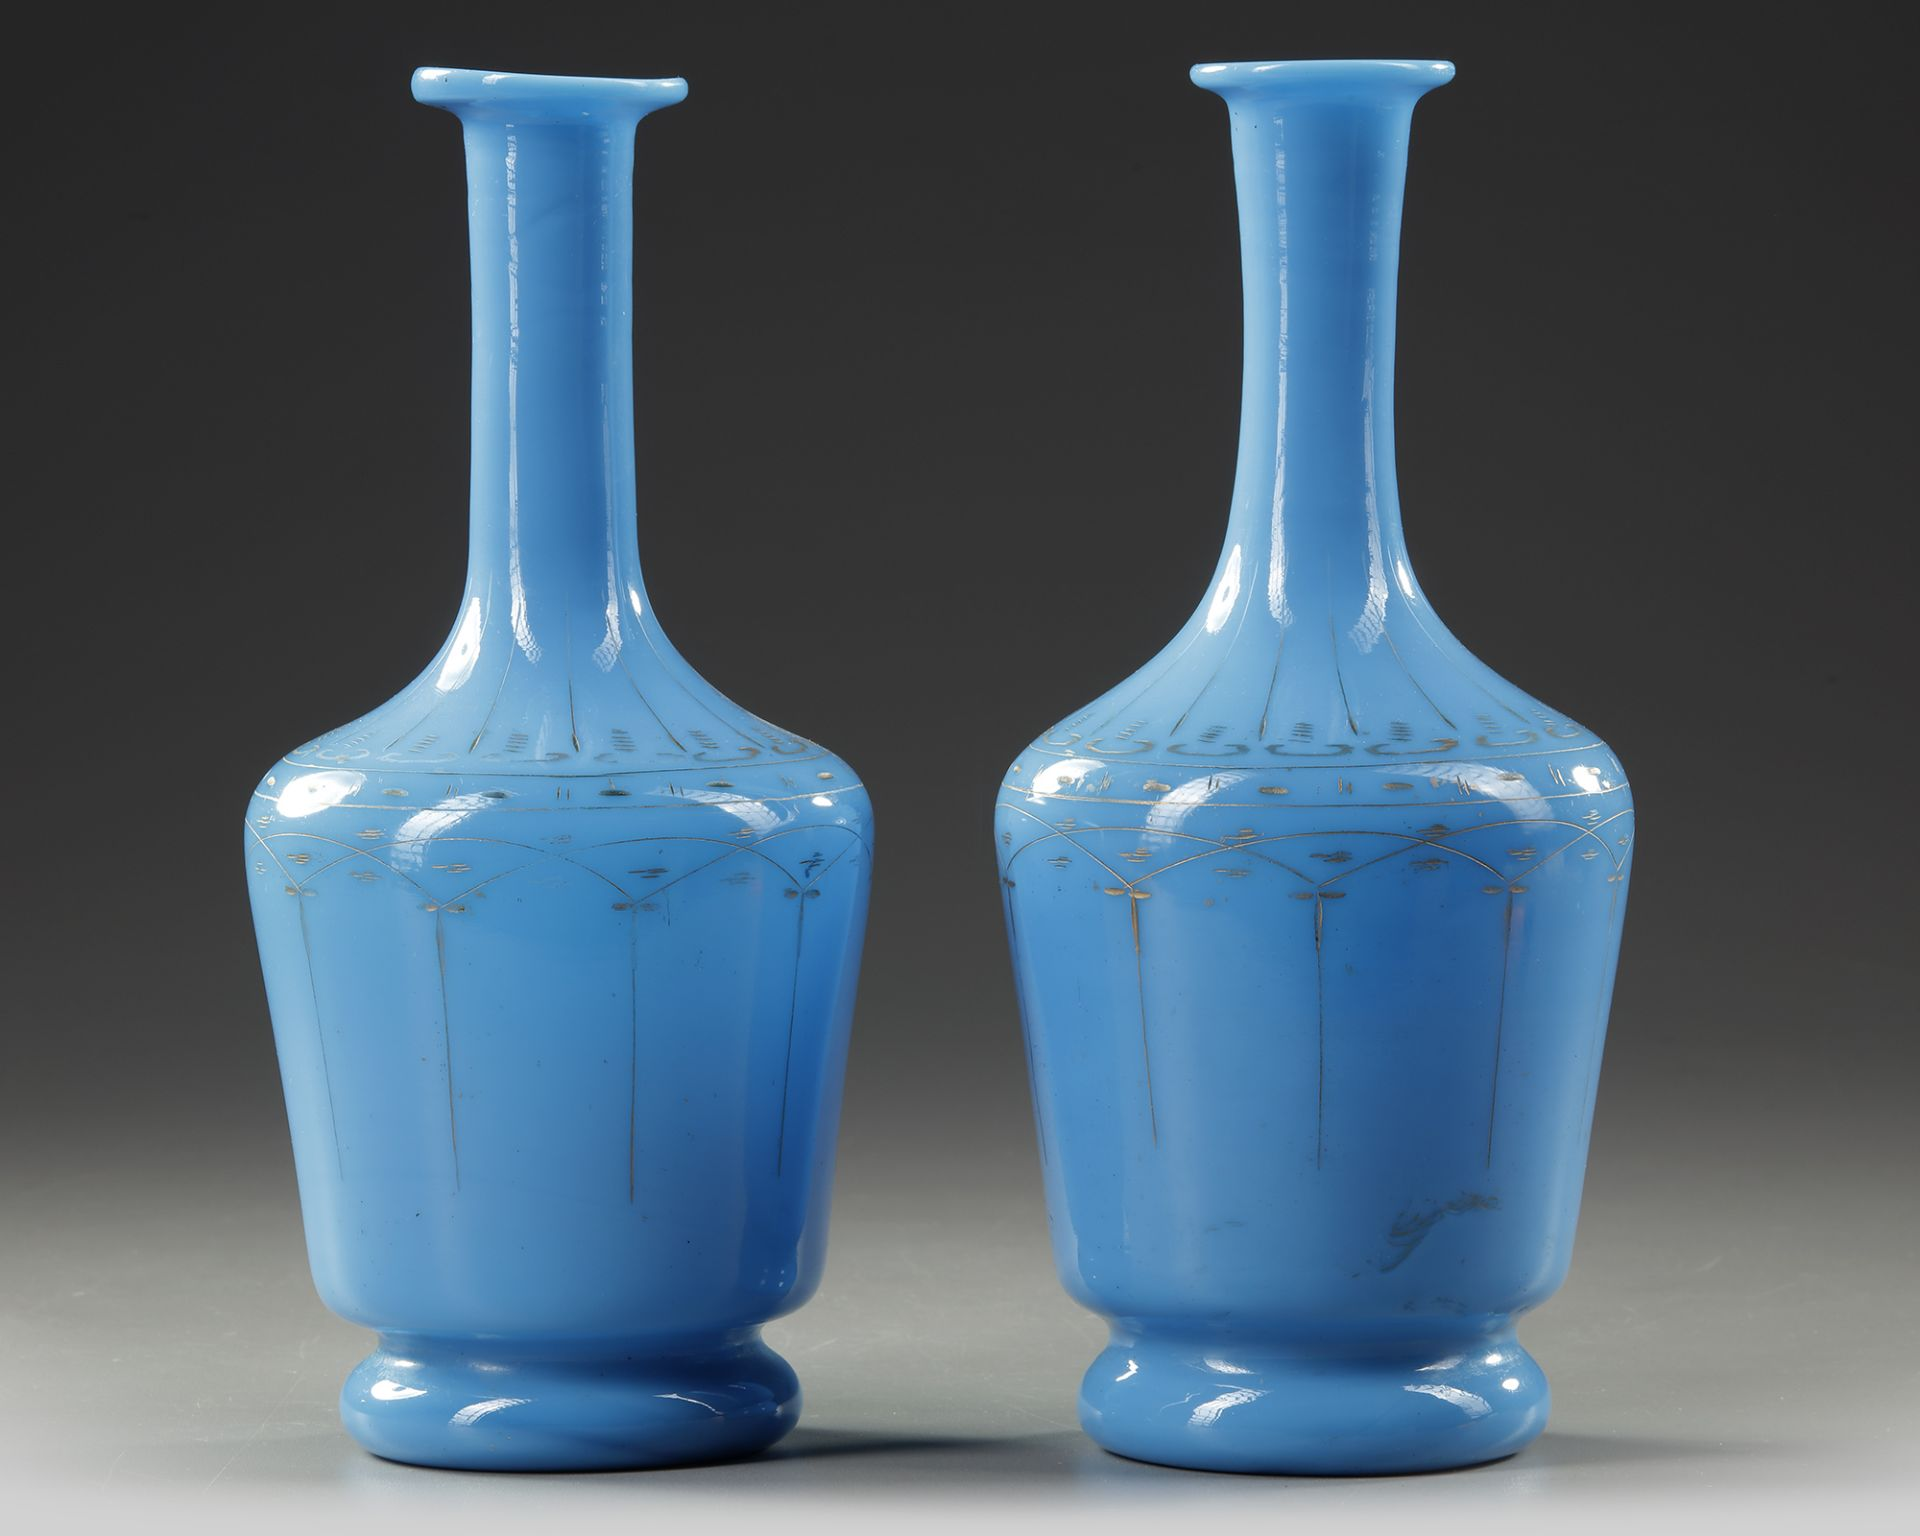 A PAIR OF OPALINE CARAFES, LATE 19TH CENTURY